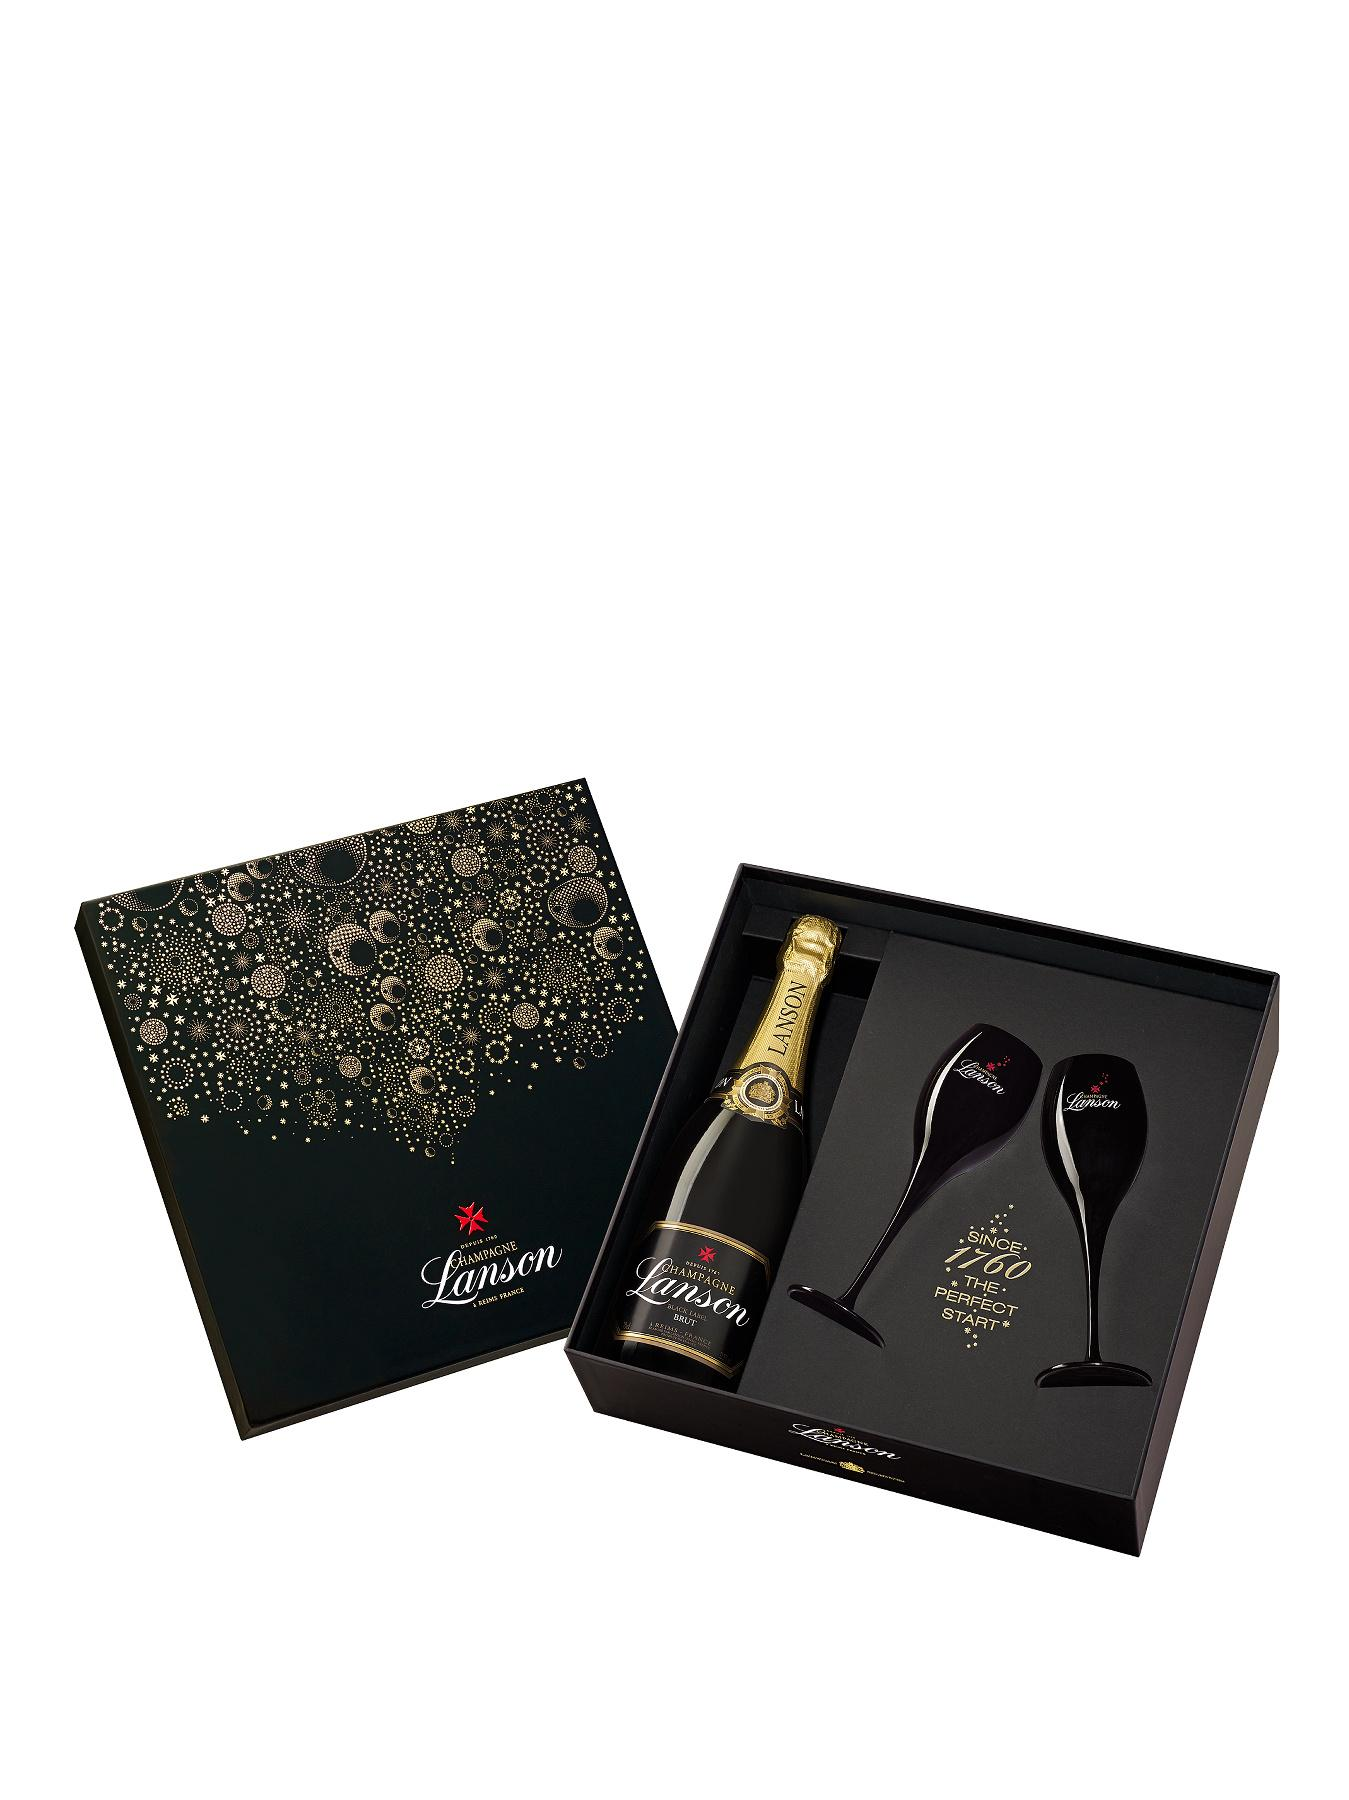 Black Label Champagne Deluxe Gift Pack with 2 black champagne flutes